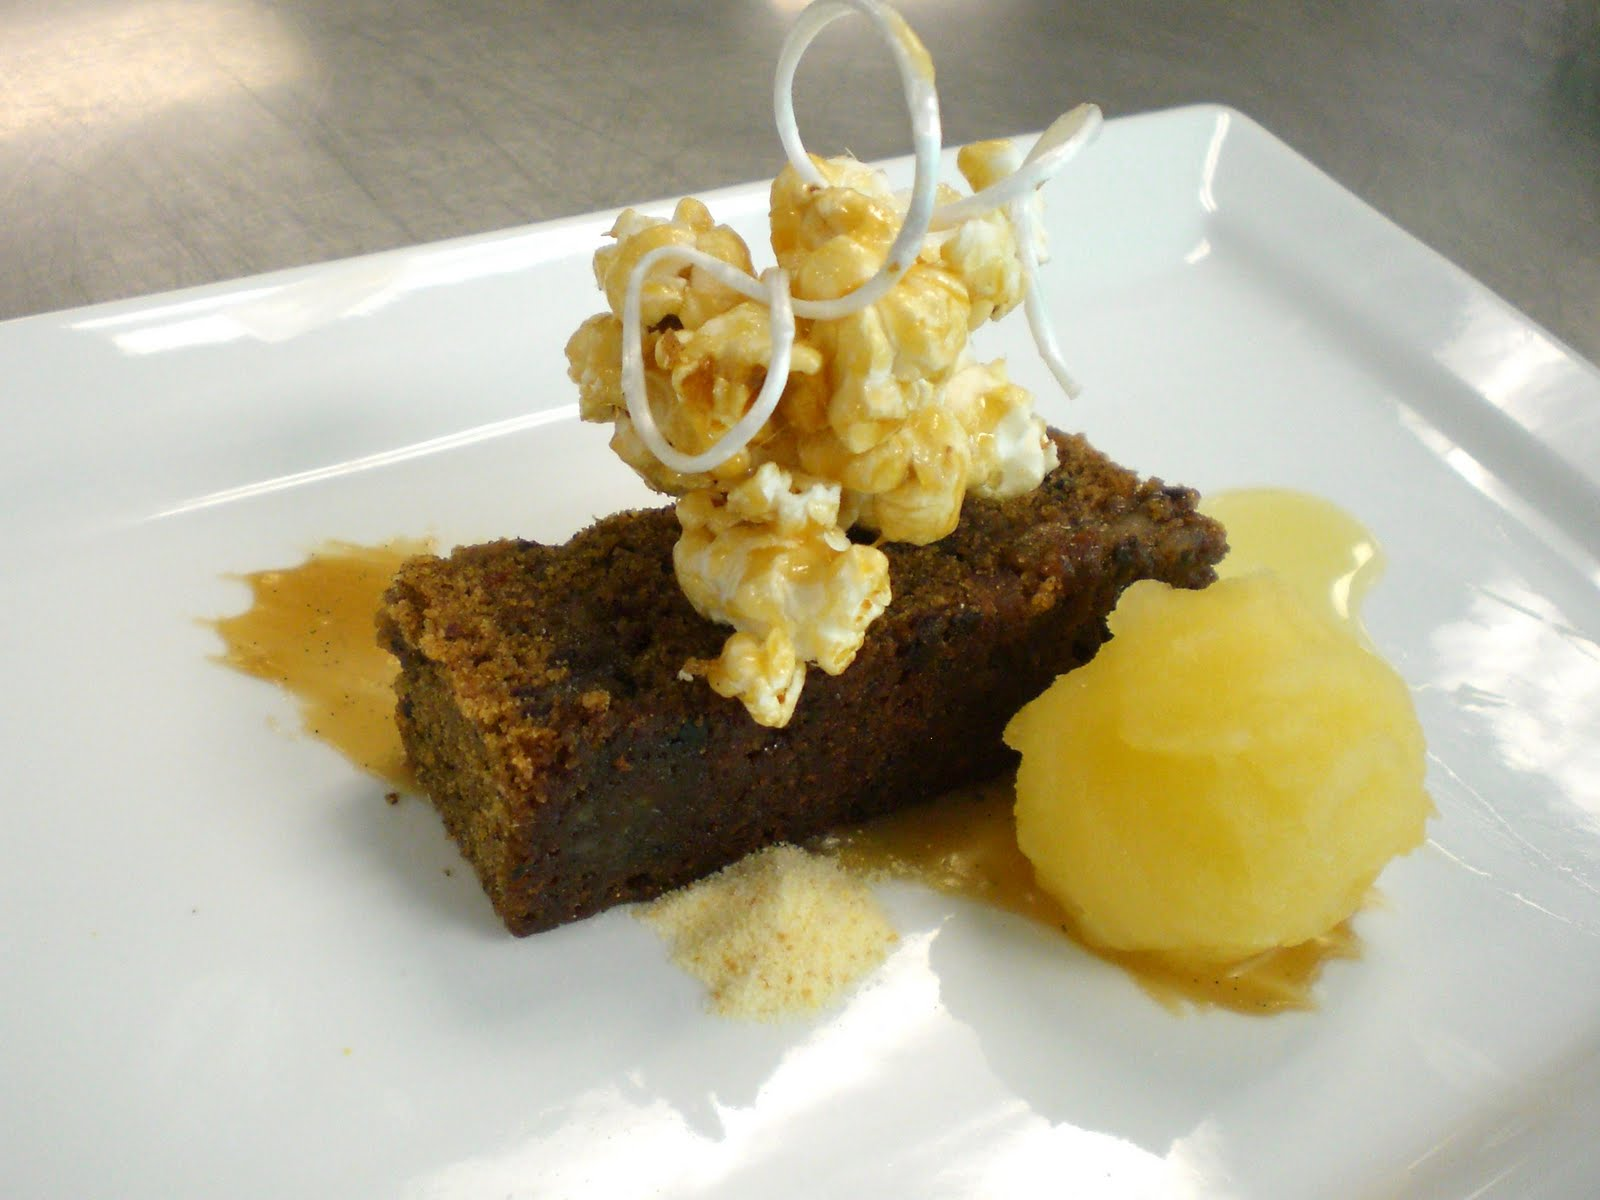 Sticky Toffee Pudding : Toffee Pudding Cake, Apple Sorbet, Toffee ...